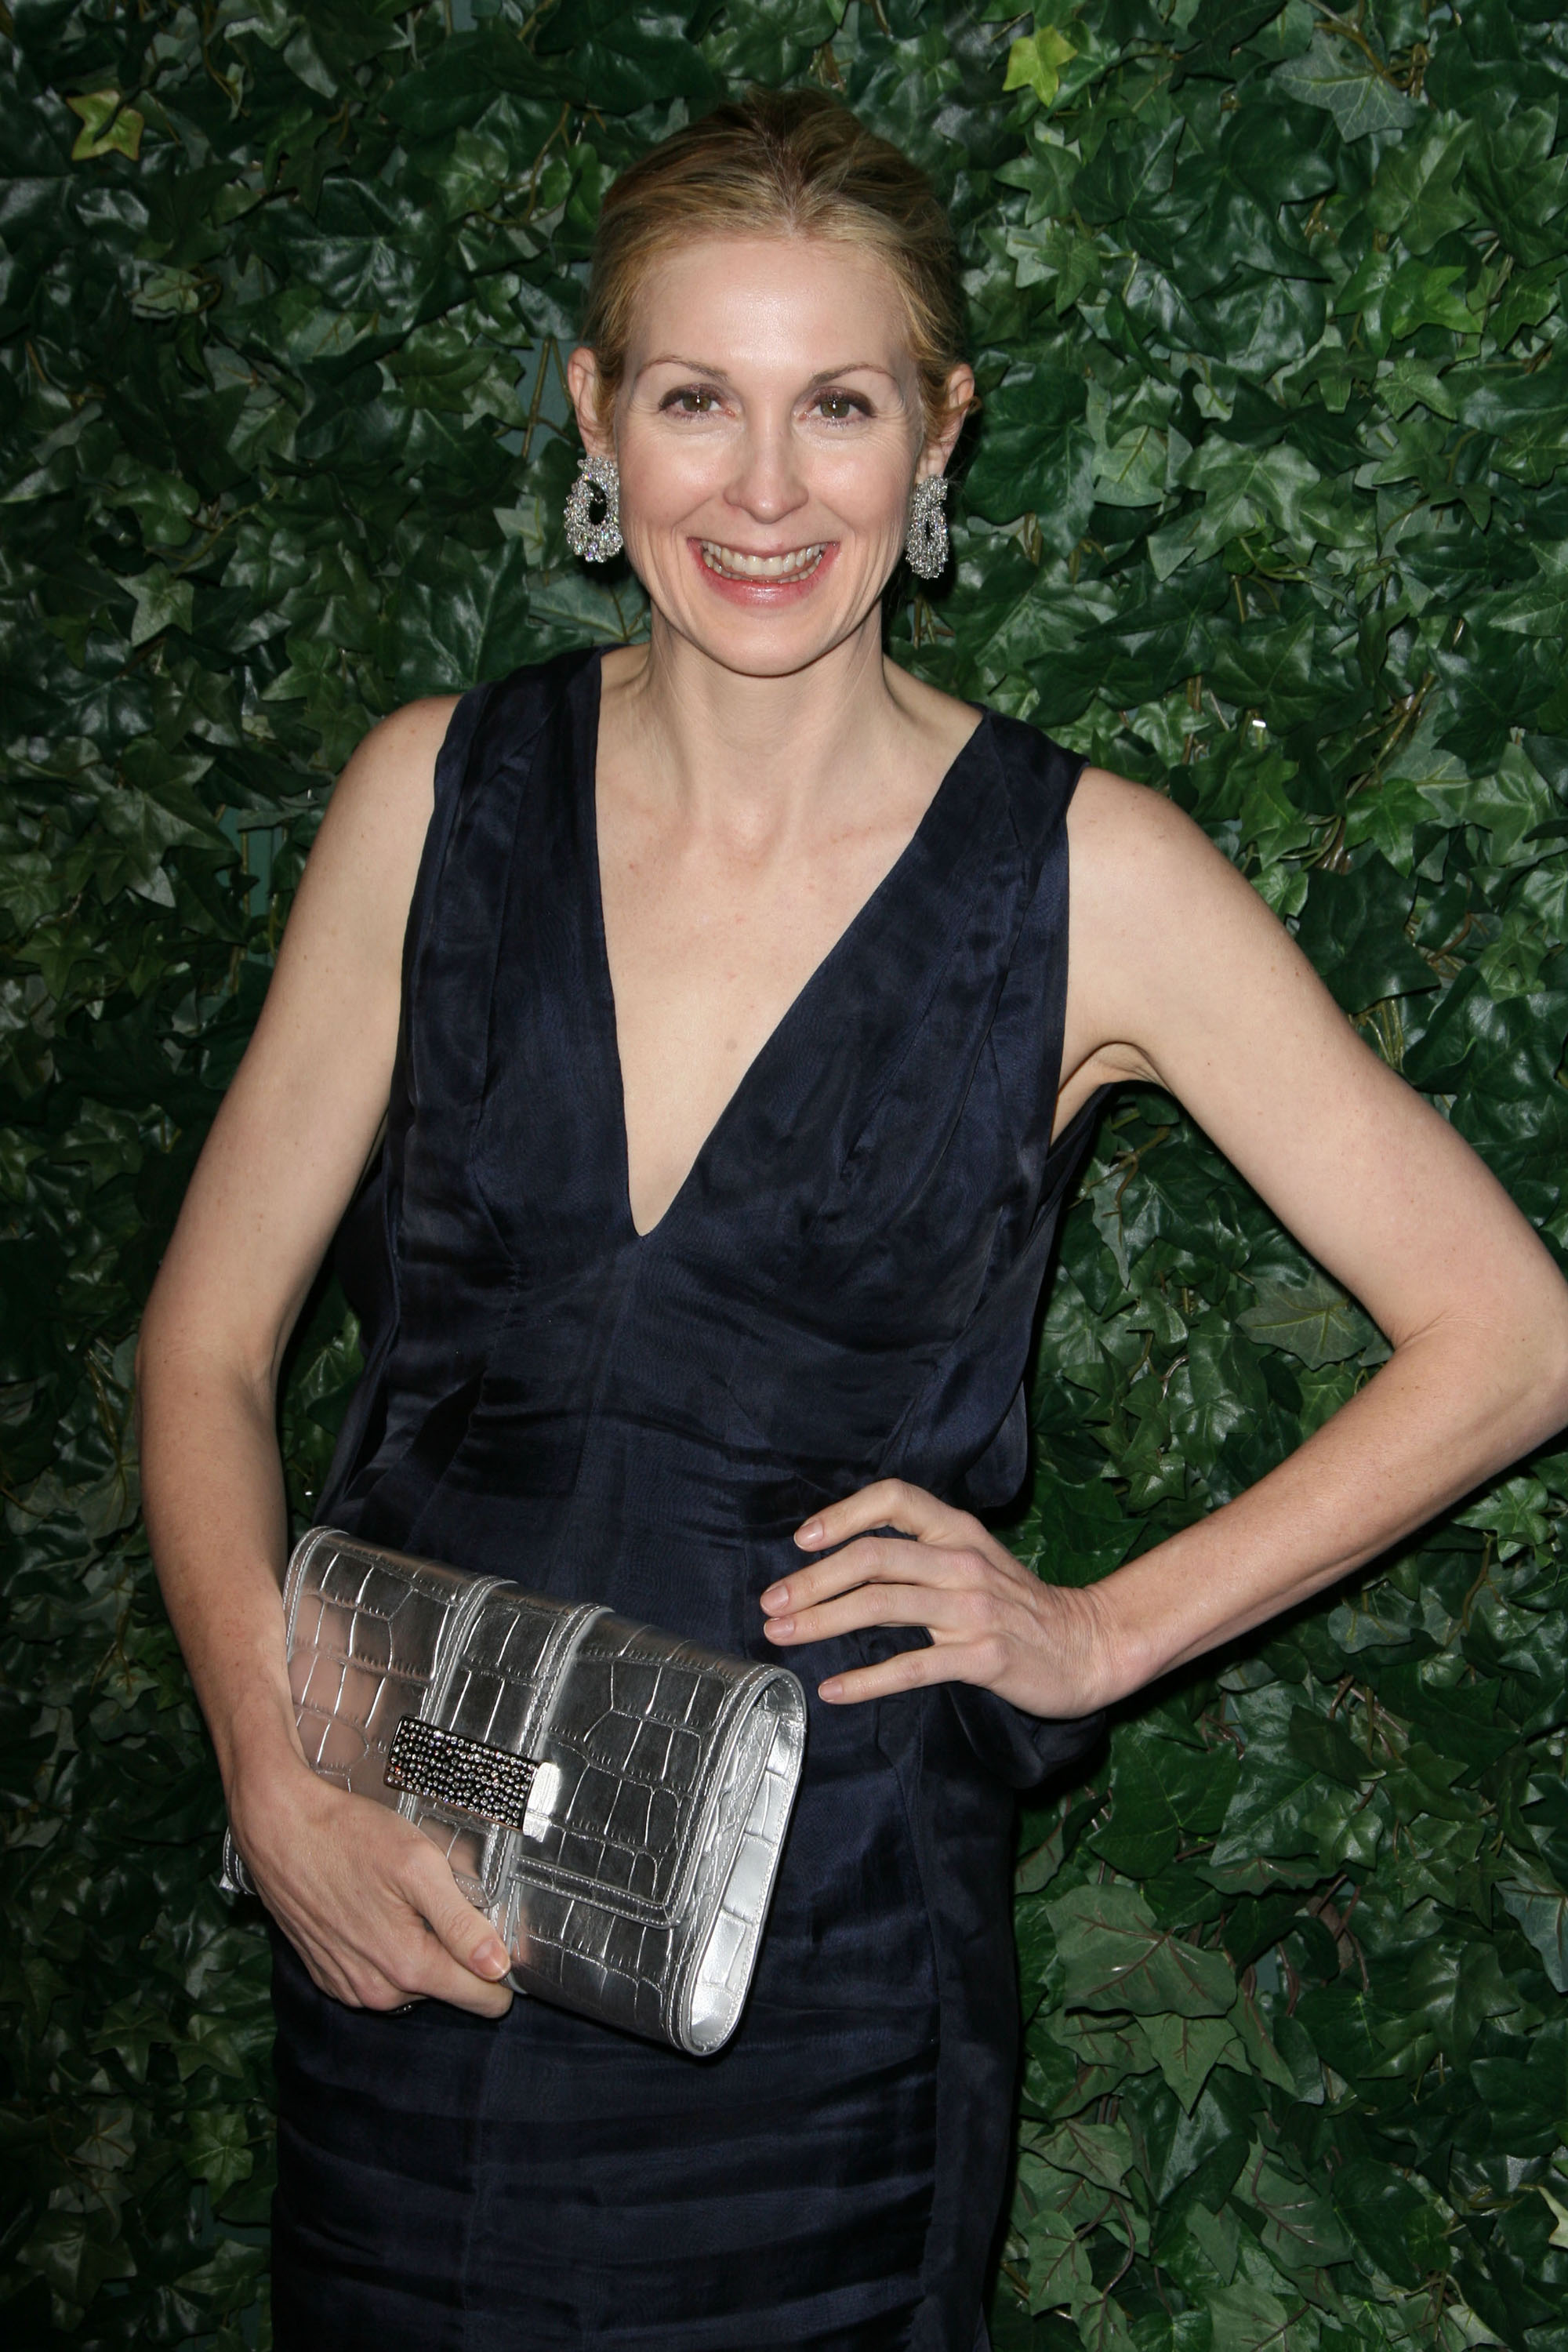 kelly rutherford dating Kelly rutherford's ex sues vanity fair for defamation by page six team kelly rutherford's ex-husband daniel giersch is suing vanity fair for defamation.